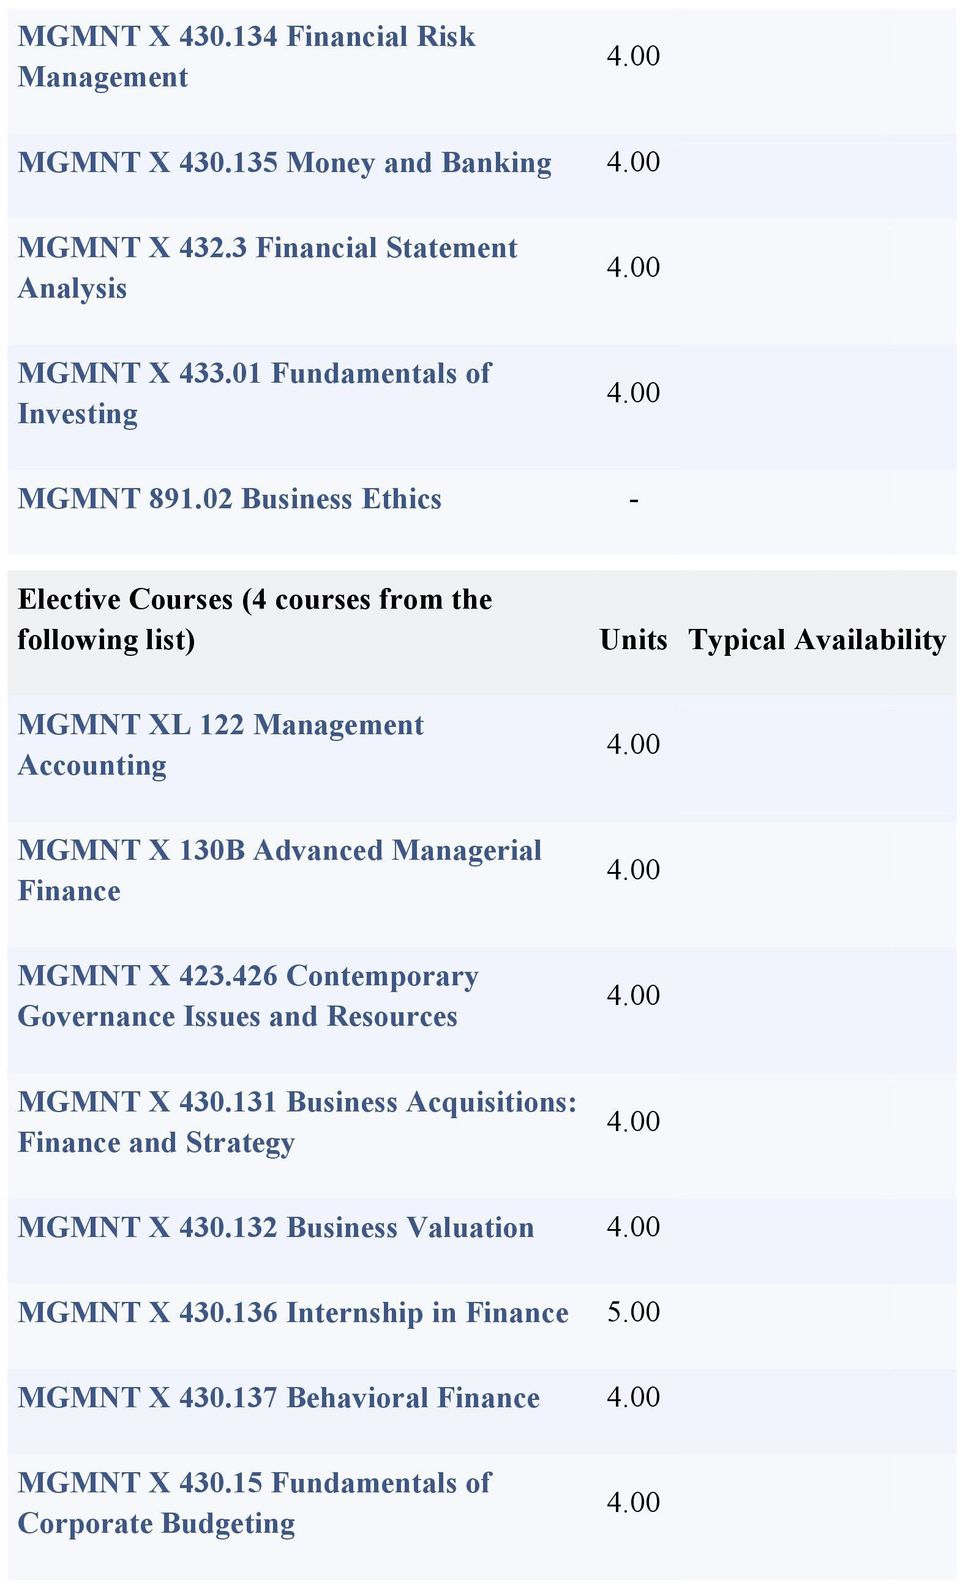 02 Business Ethics - Elective Courses (4 courses from the following list) MGMNT XL 122 Management Accounting Units Typical Availability MGMNT X 130B Advanced